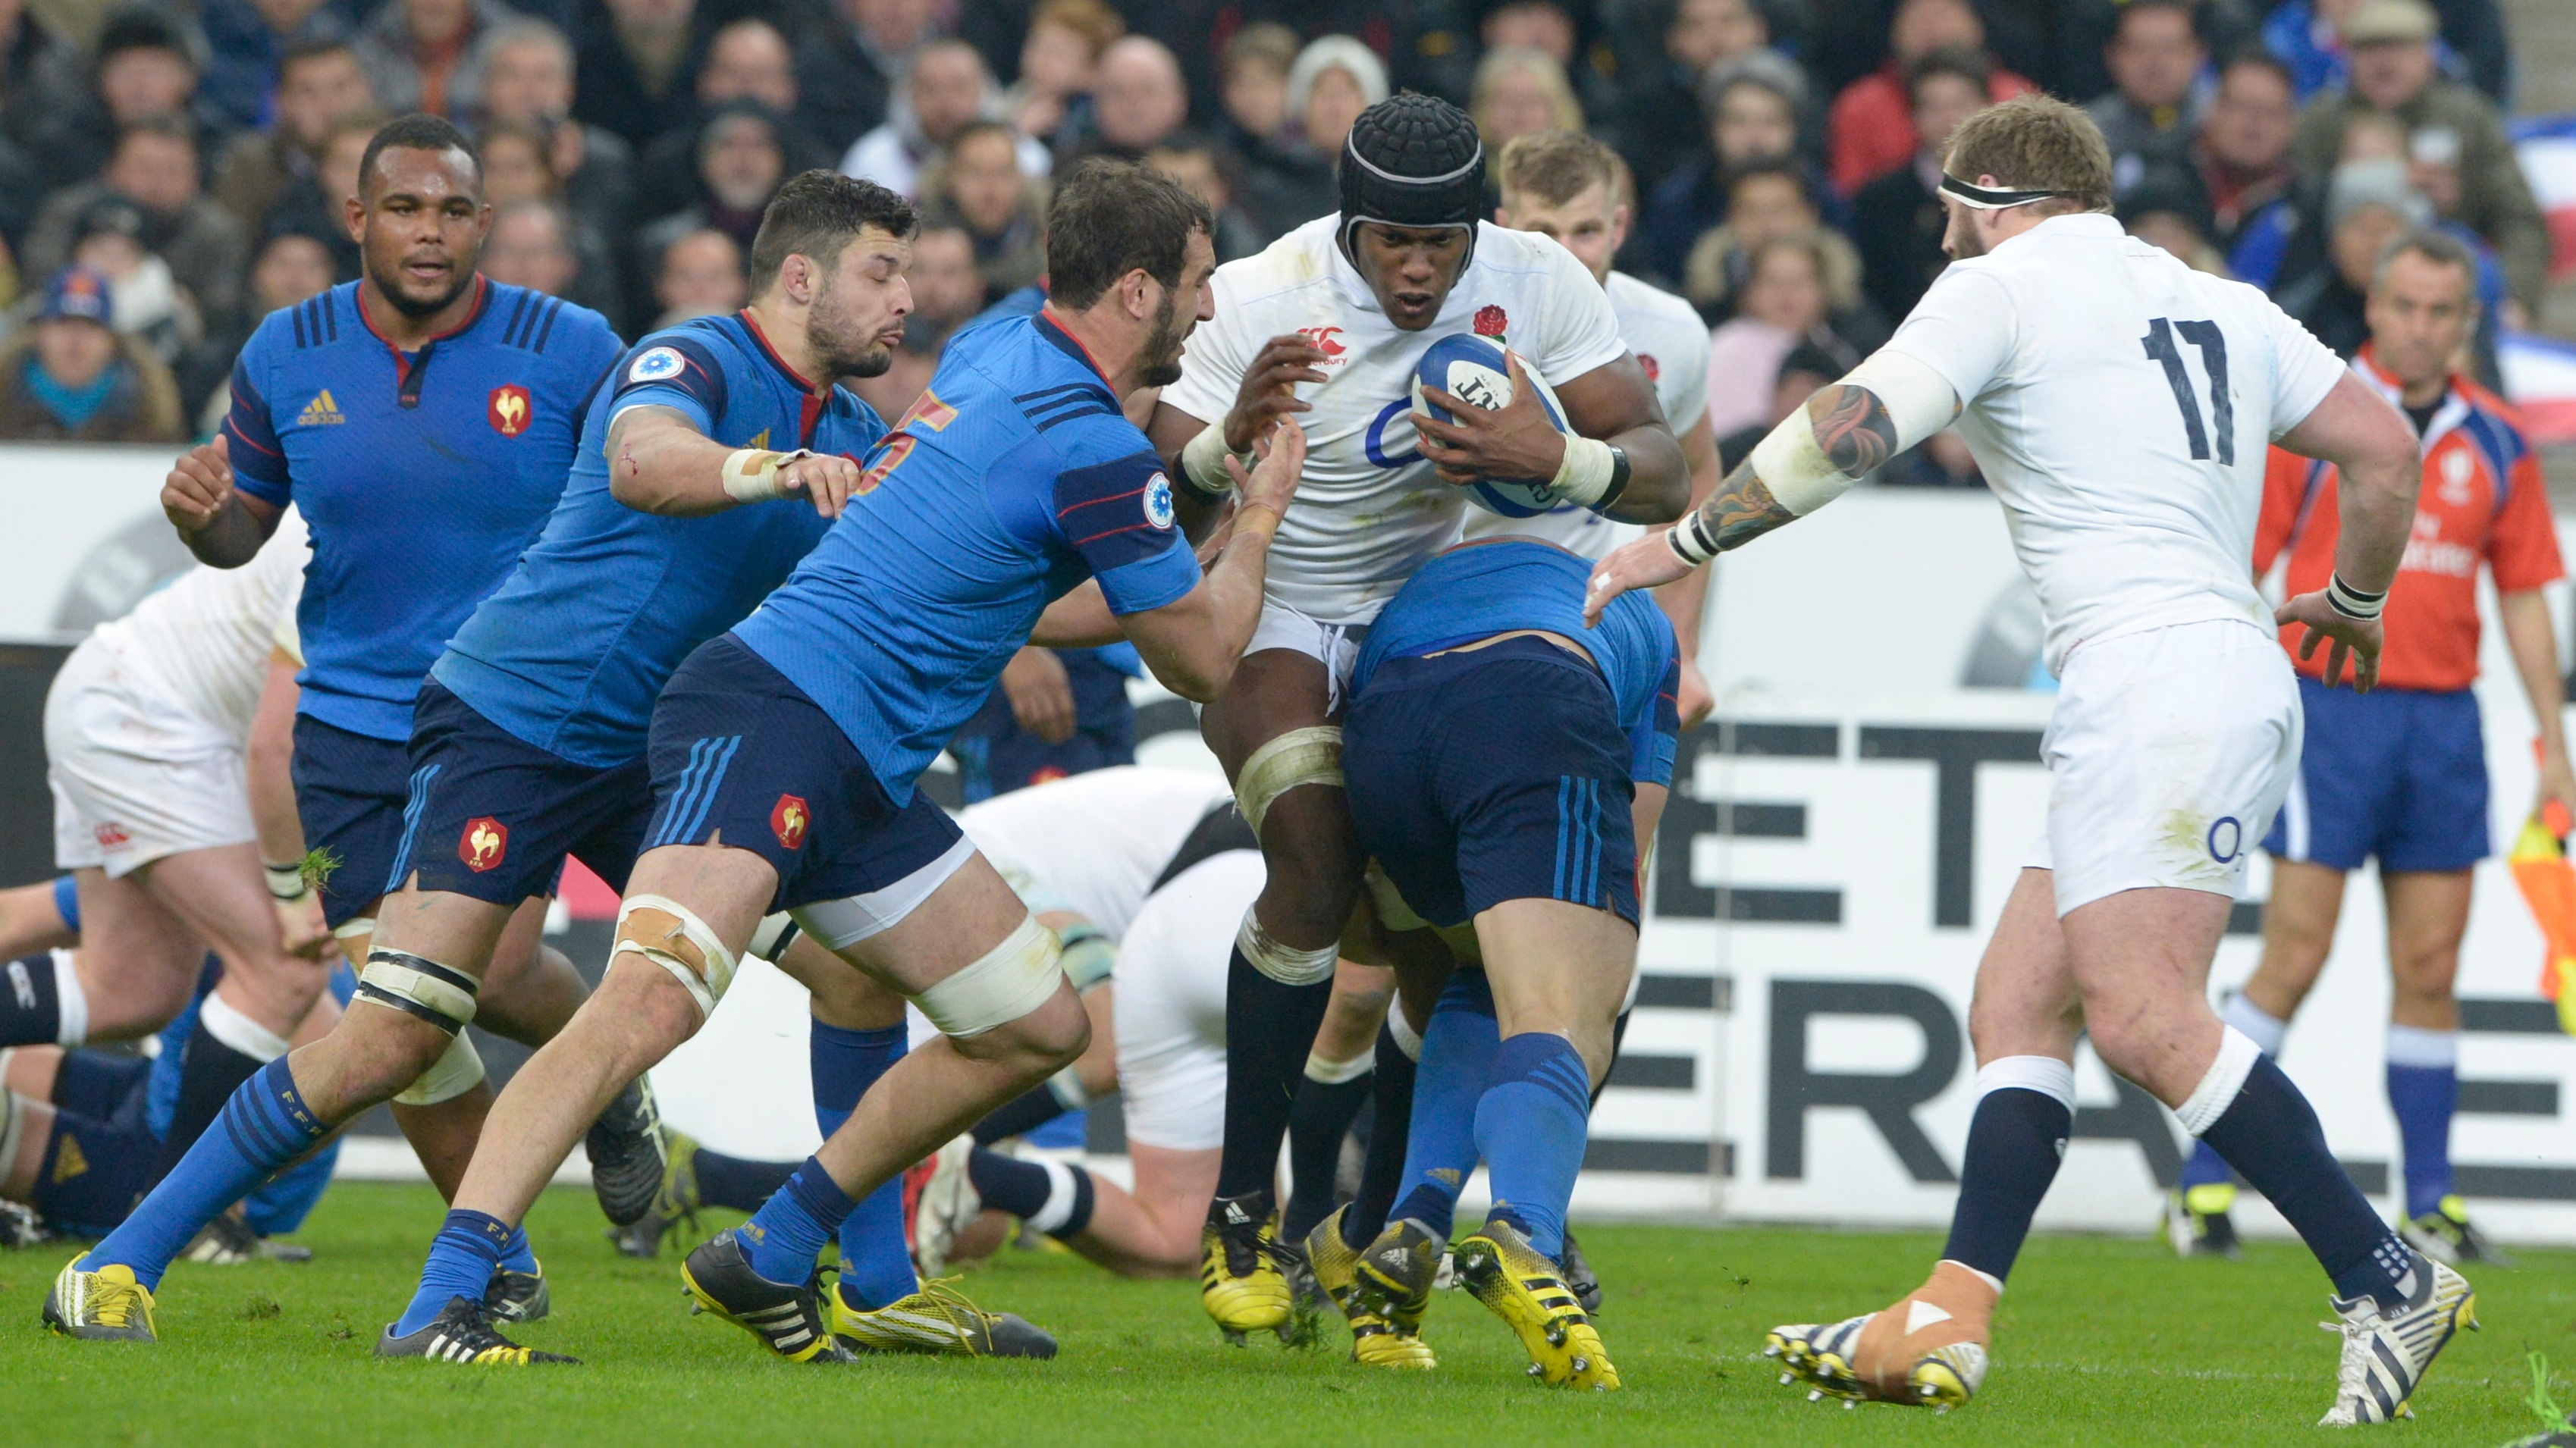 England rugby players shortlisted for European award - ITV ...